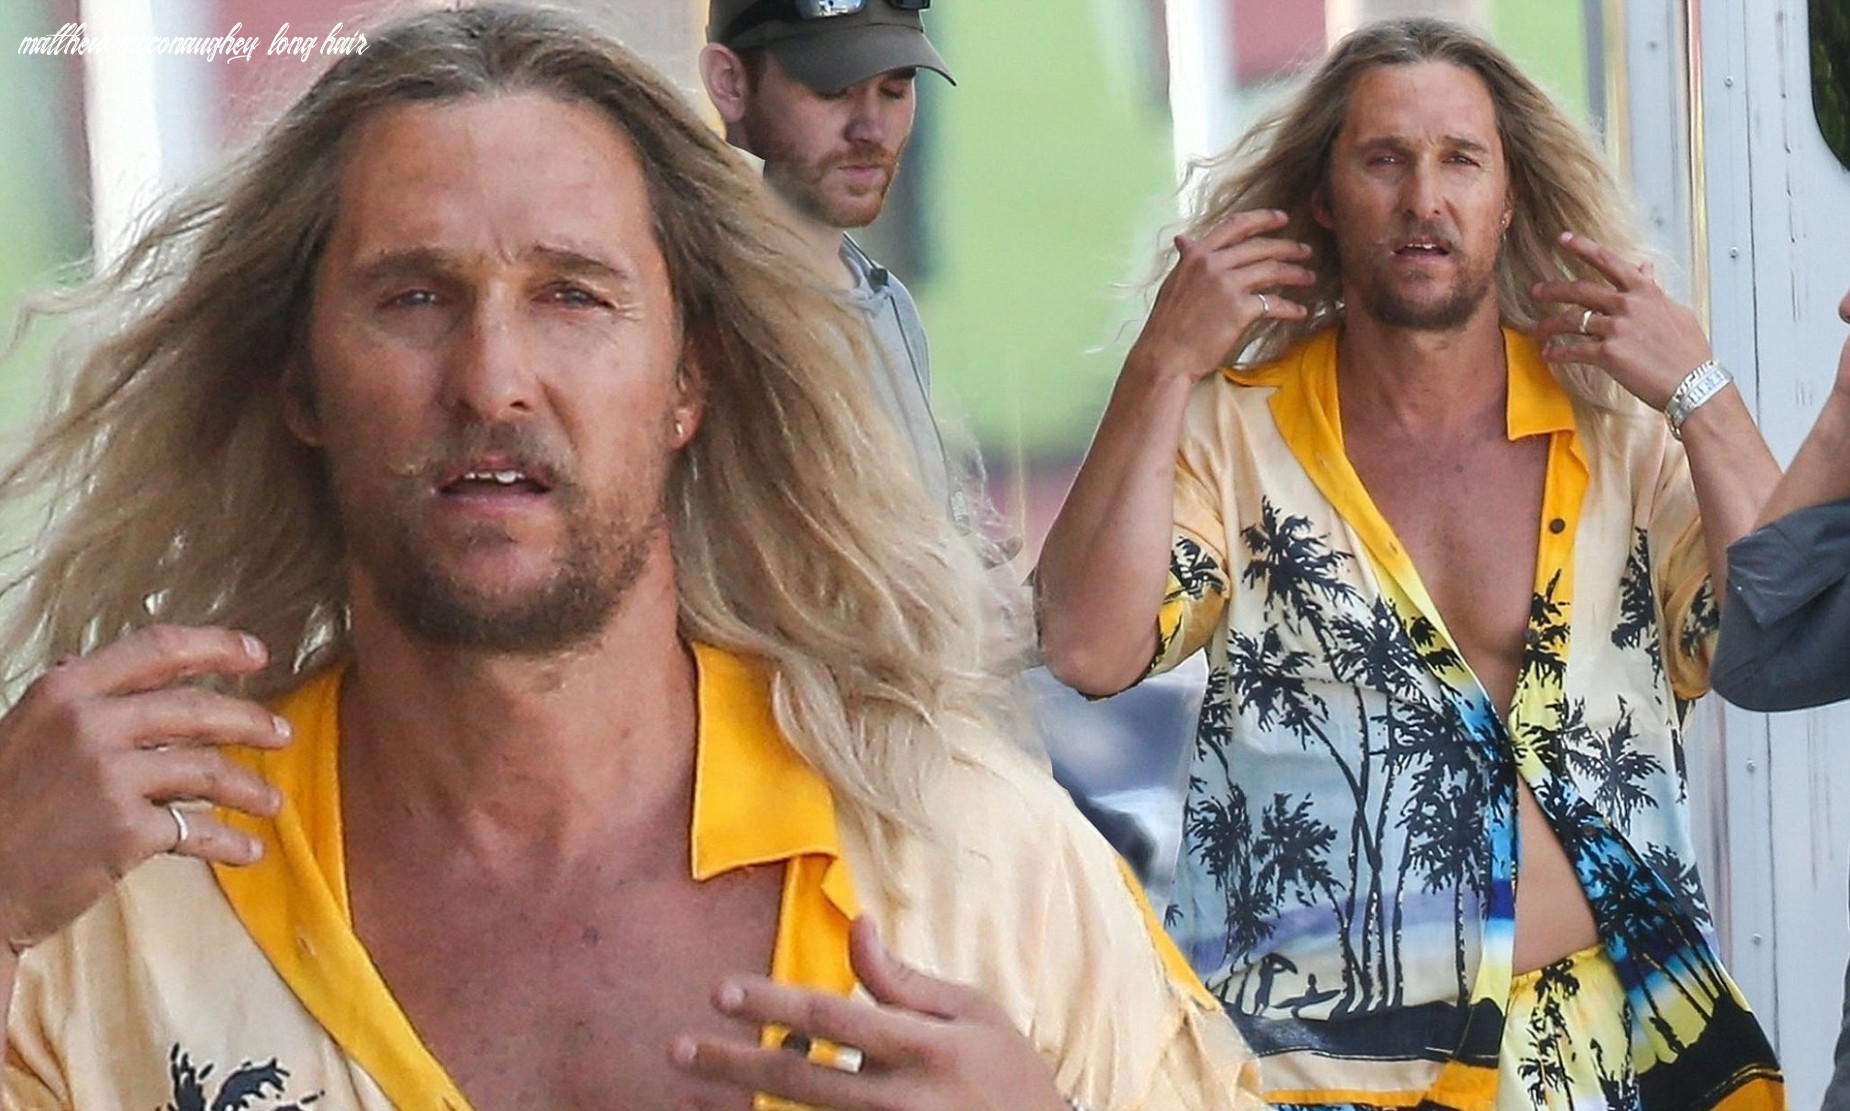 Matthew mcconaughey wears blonde wig filming in miami | daily mail